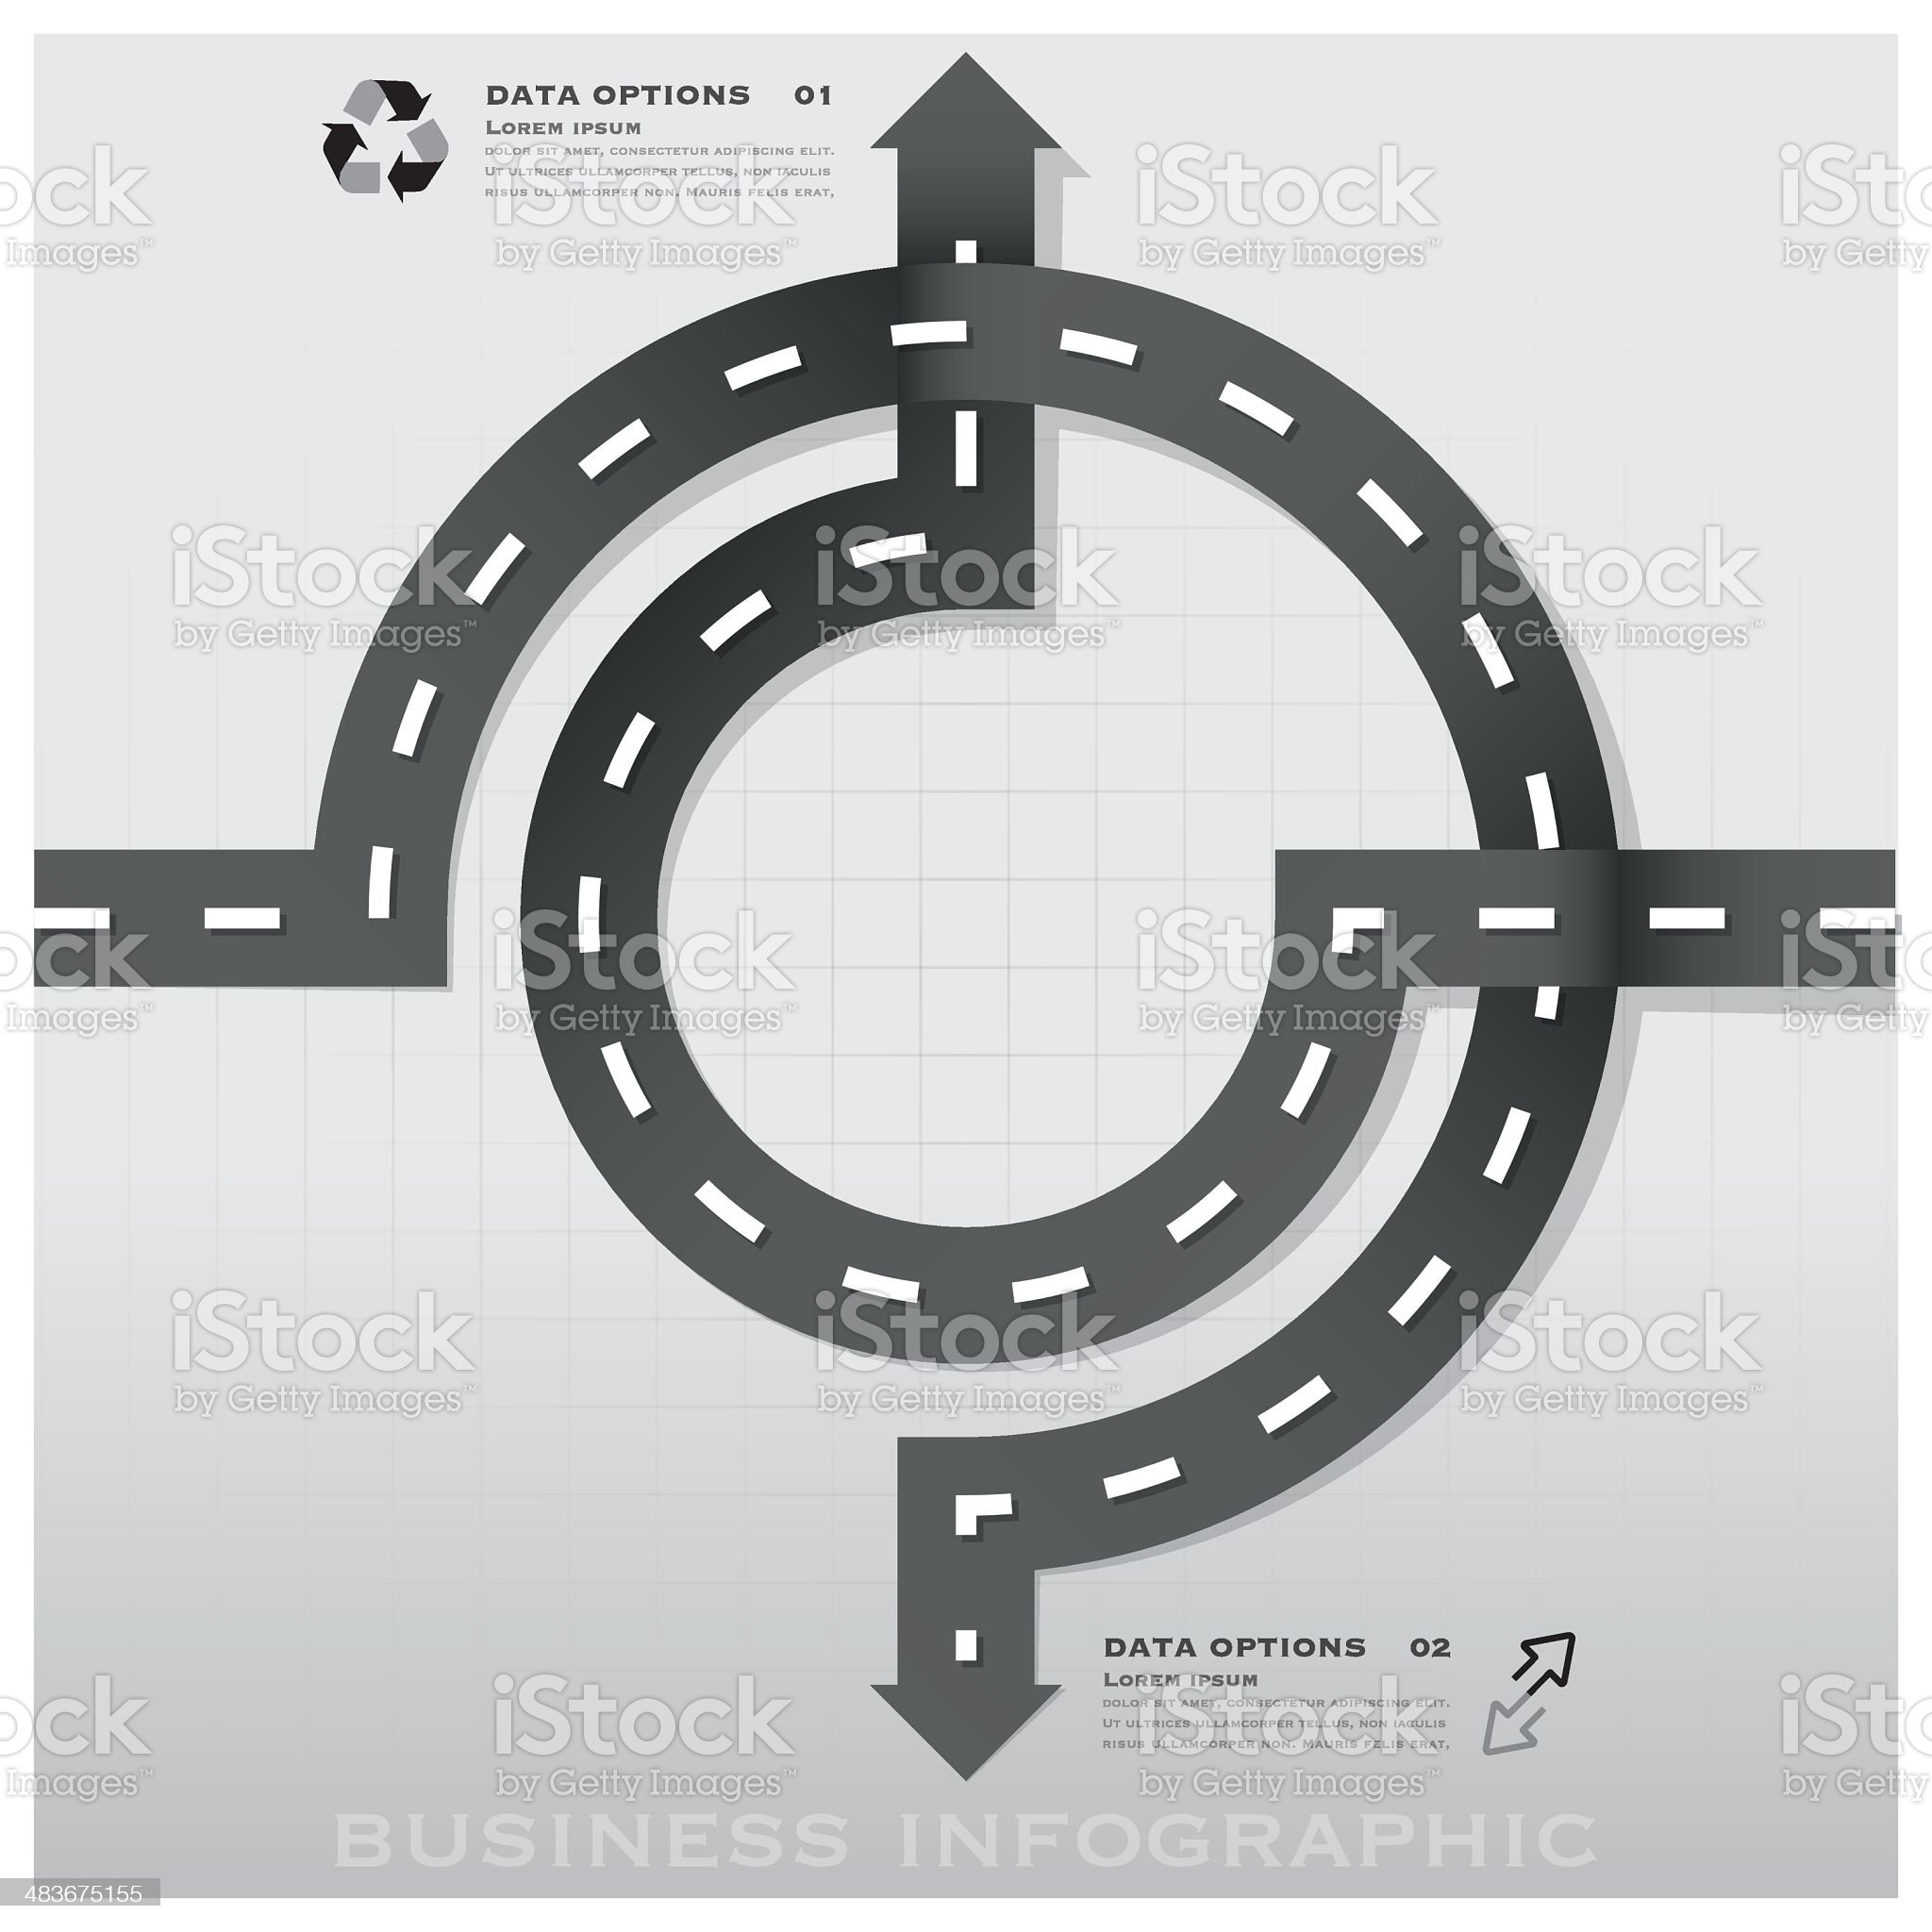 Road And Street Traffic Sign Business Infographic Design Template royalty-free stock vector art